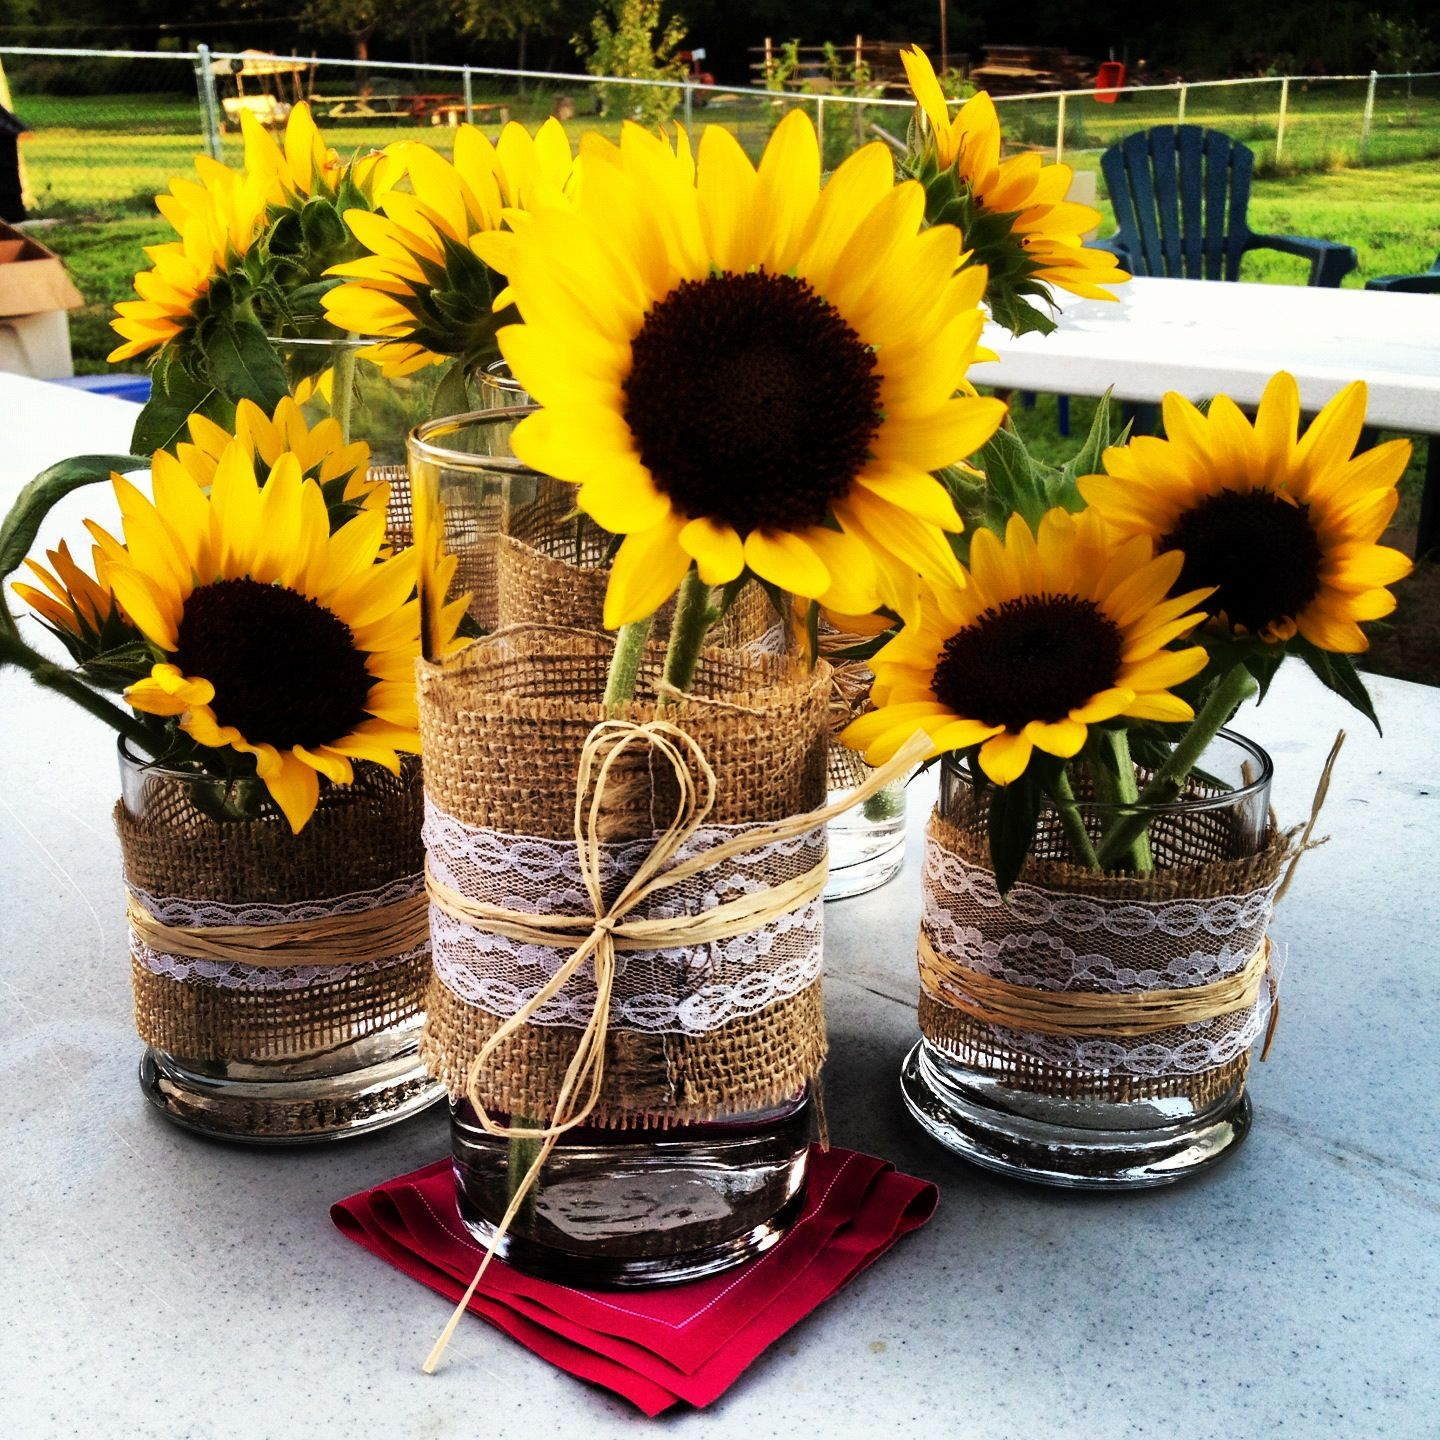 Diy center pieces we made for engagement party craft